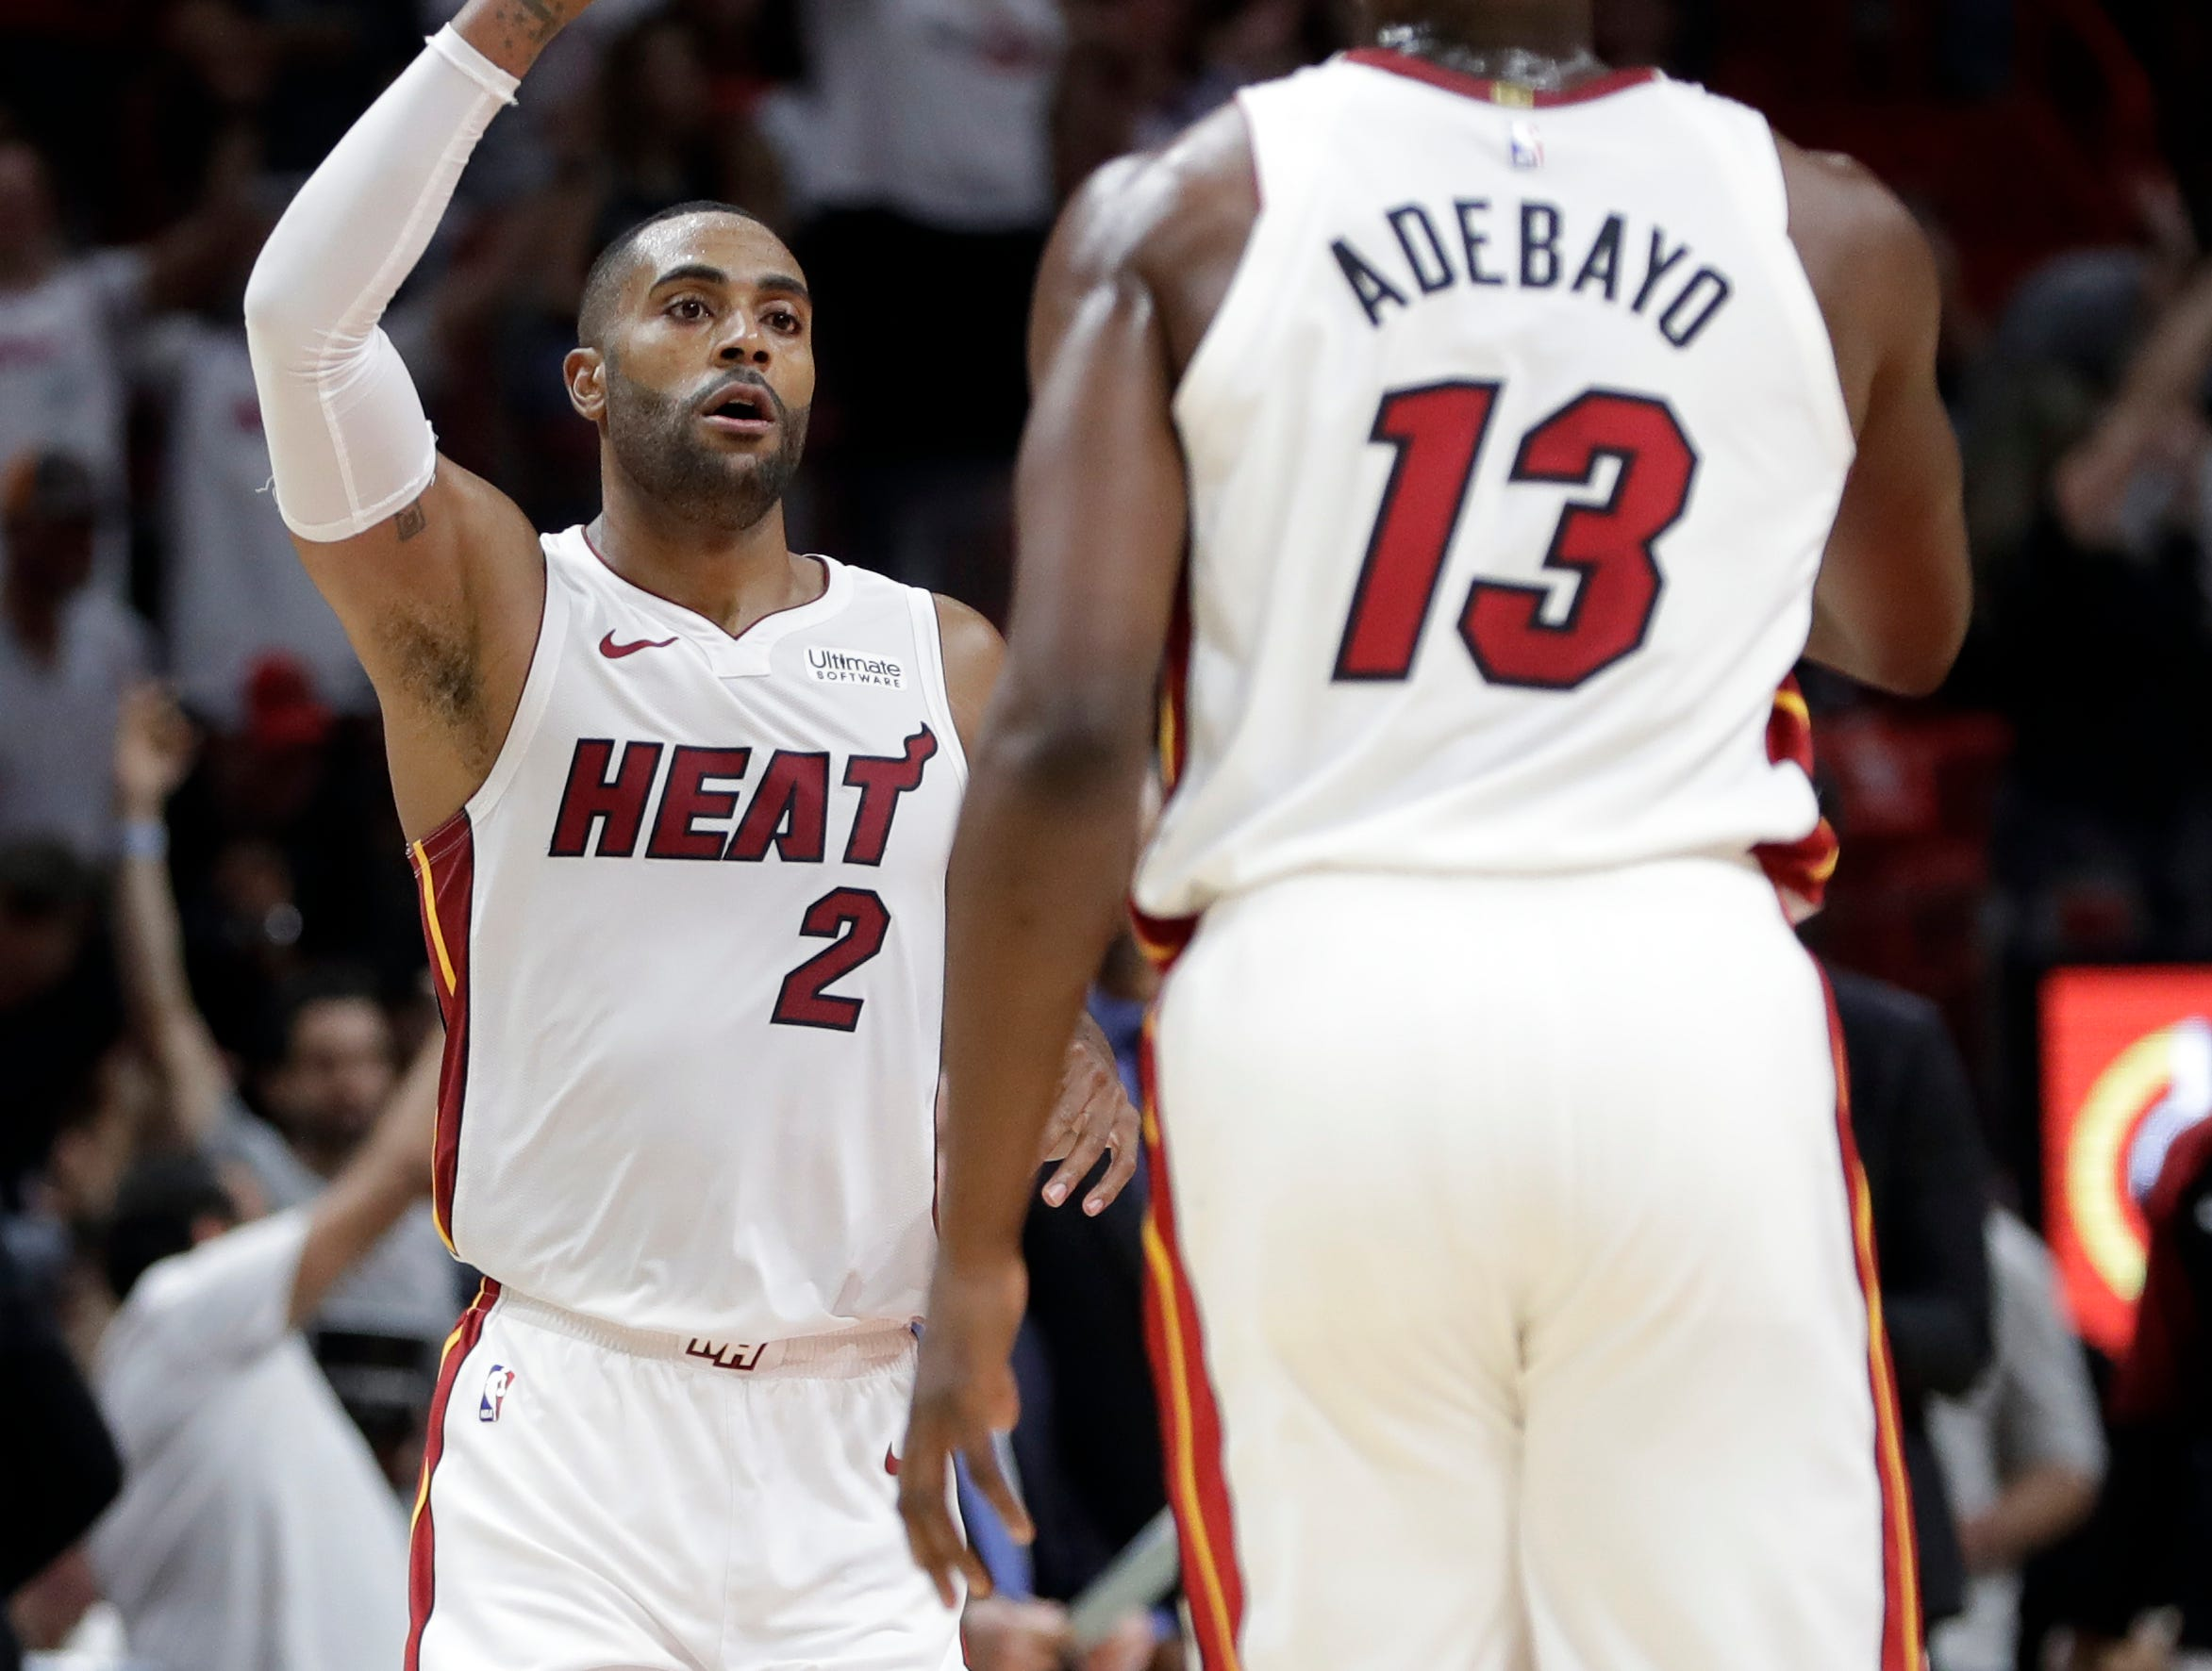 Miami Heat guard Wayne Ellington reacts after shooting a 3-point basket during the second half of an NBA basketball game against the San Antonio Spurs, Wednesday, Nov. 7, 2018, in Miami.